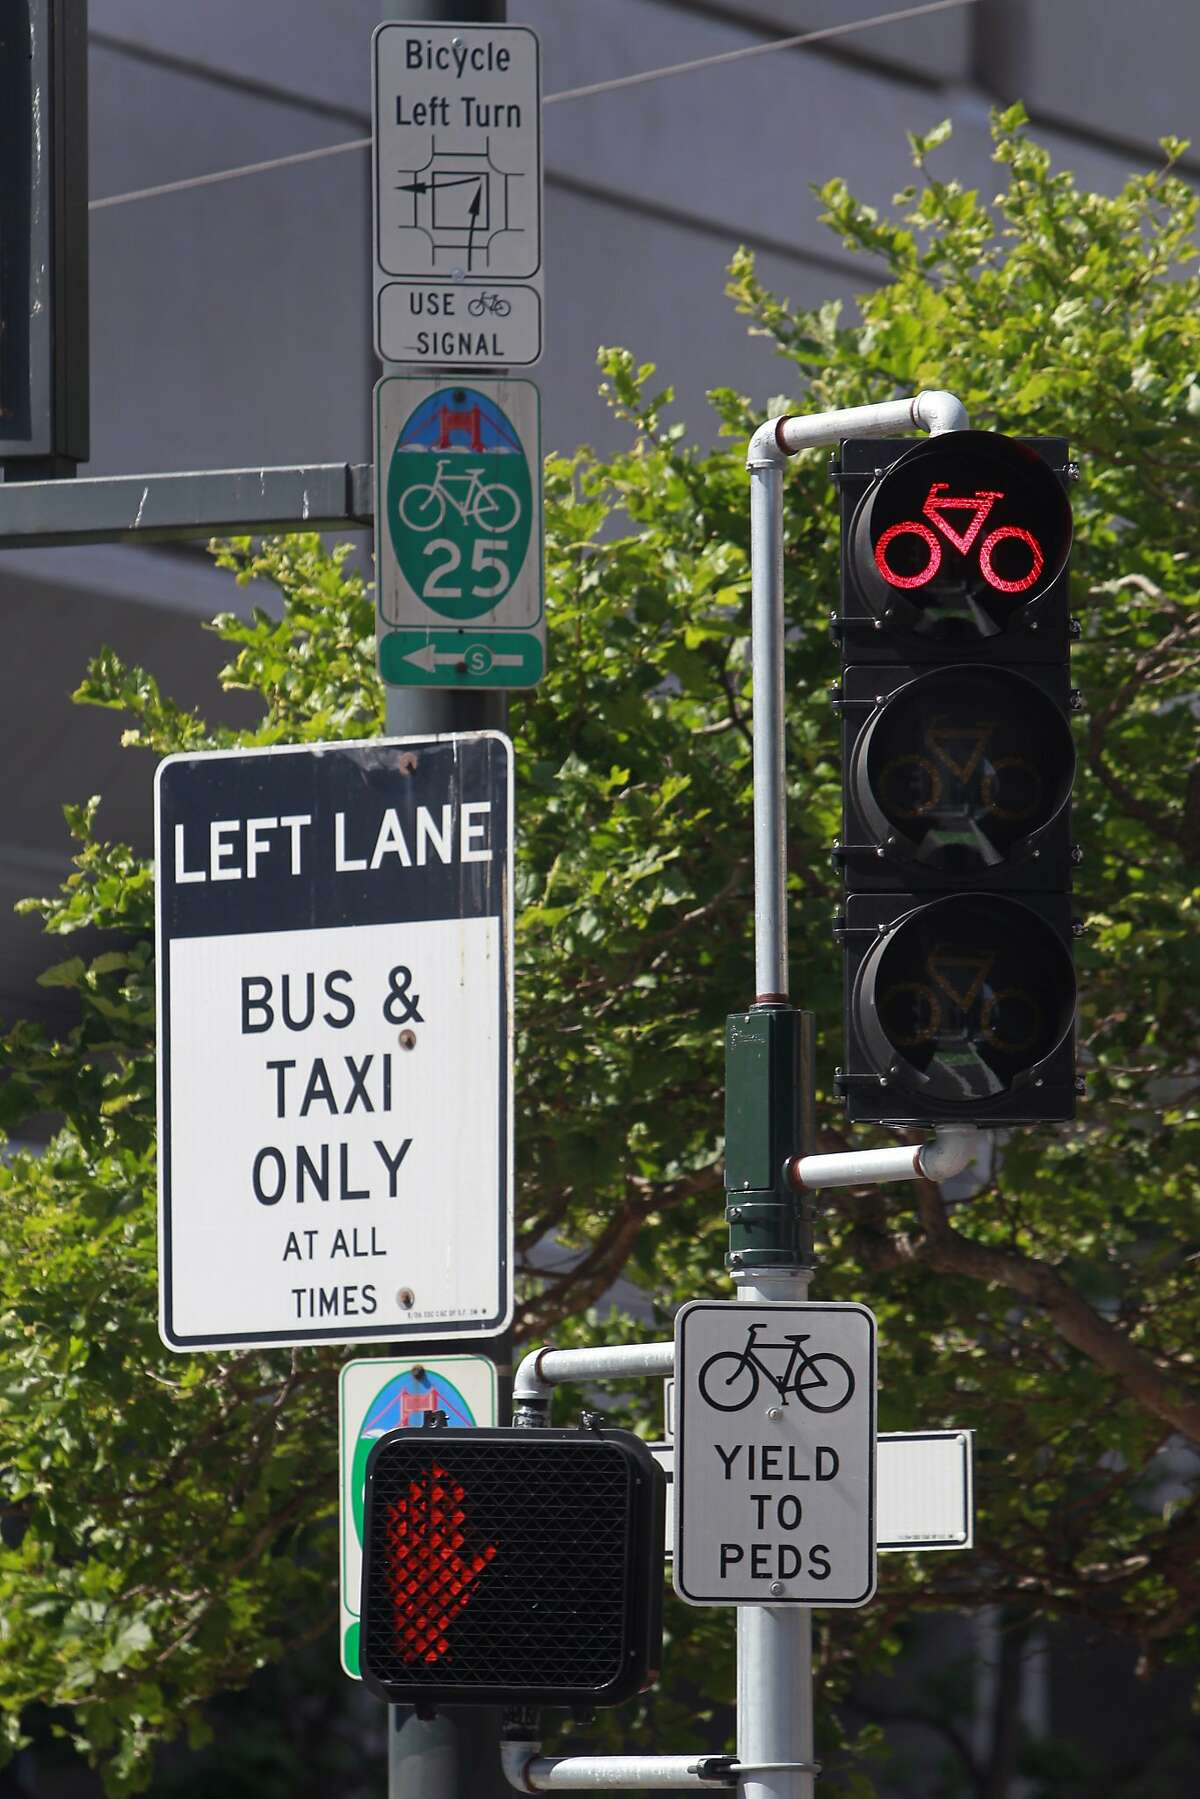 A collection of traffic signs assist bicyclists through a maze of complex maneuvers at Polk and Market streets in San Francisco, Calif. on Saturday, May 24, 2014.